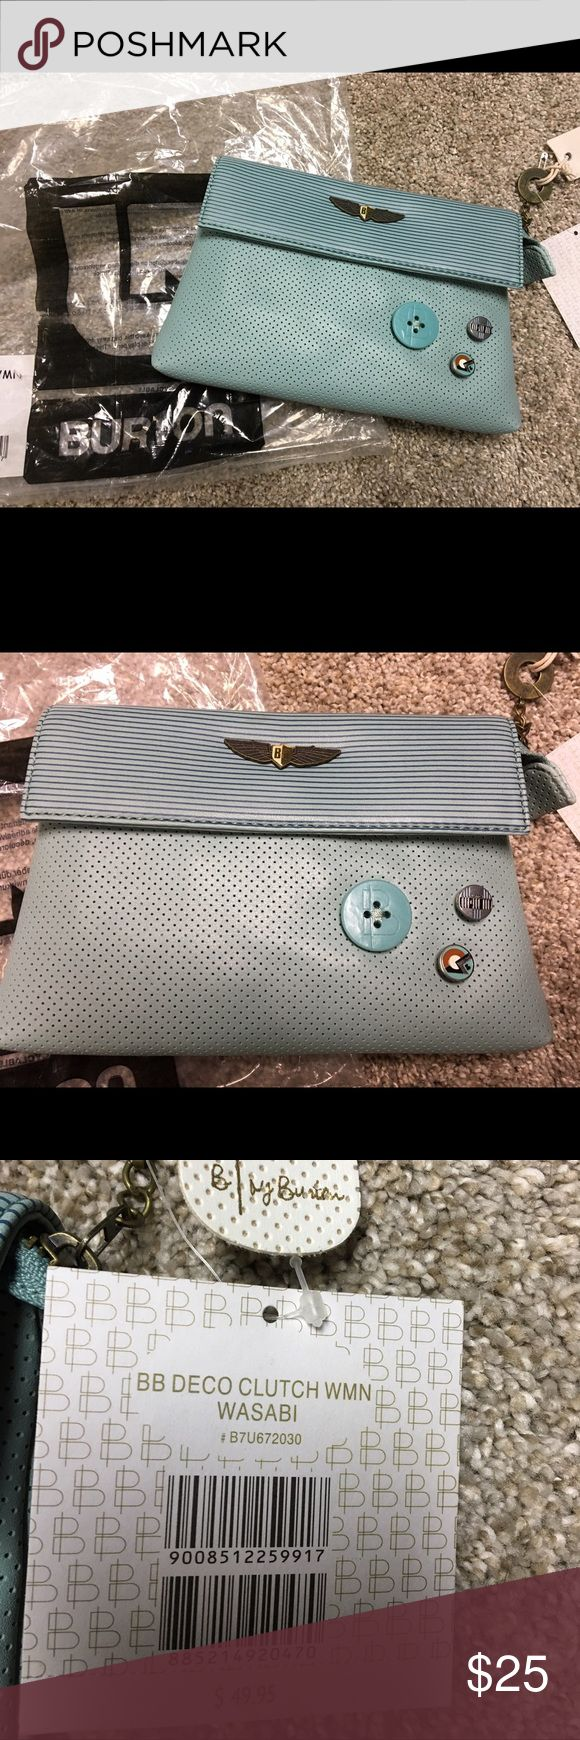 NWT! Burton Deco Wasabi Clutch Handbag/Wallet New with tag!  Adorable clutch. Large enough to be used as a handbag but still small enough to just use as a wallet.  Cool buttons. Some removable to accent w others. About 8inches wide and 6 inches tall.  Cool light blue like robins egg color. Burton Bags Clutches & Wristlets